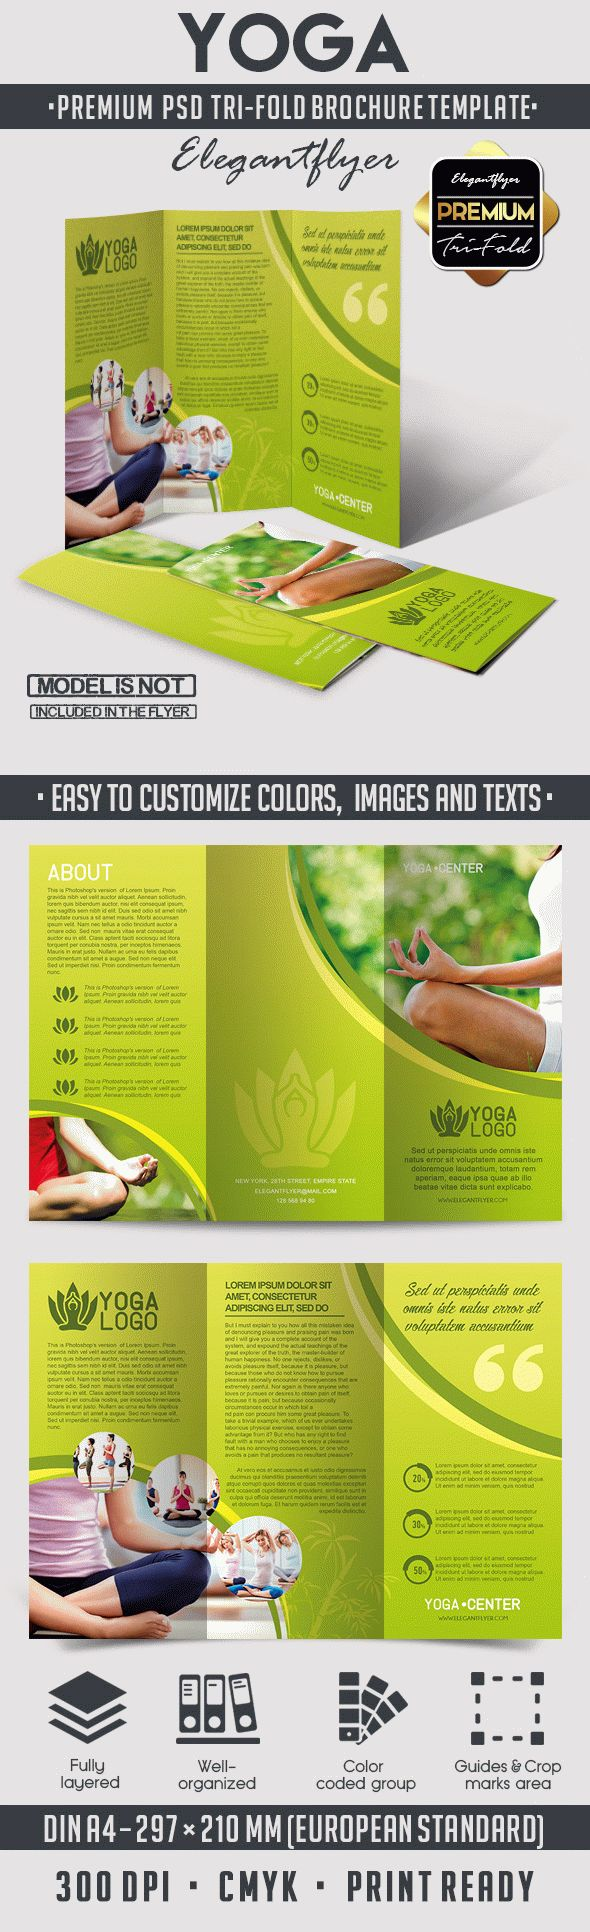 Yoga tri fold brochure psd template by elegantflyer for Templates for tri fold brochures